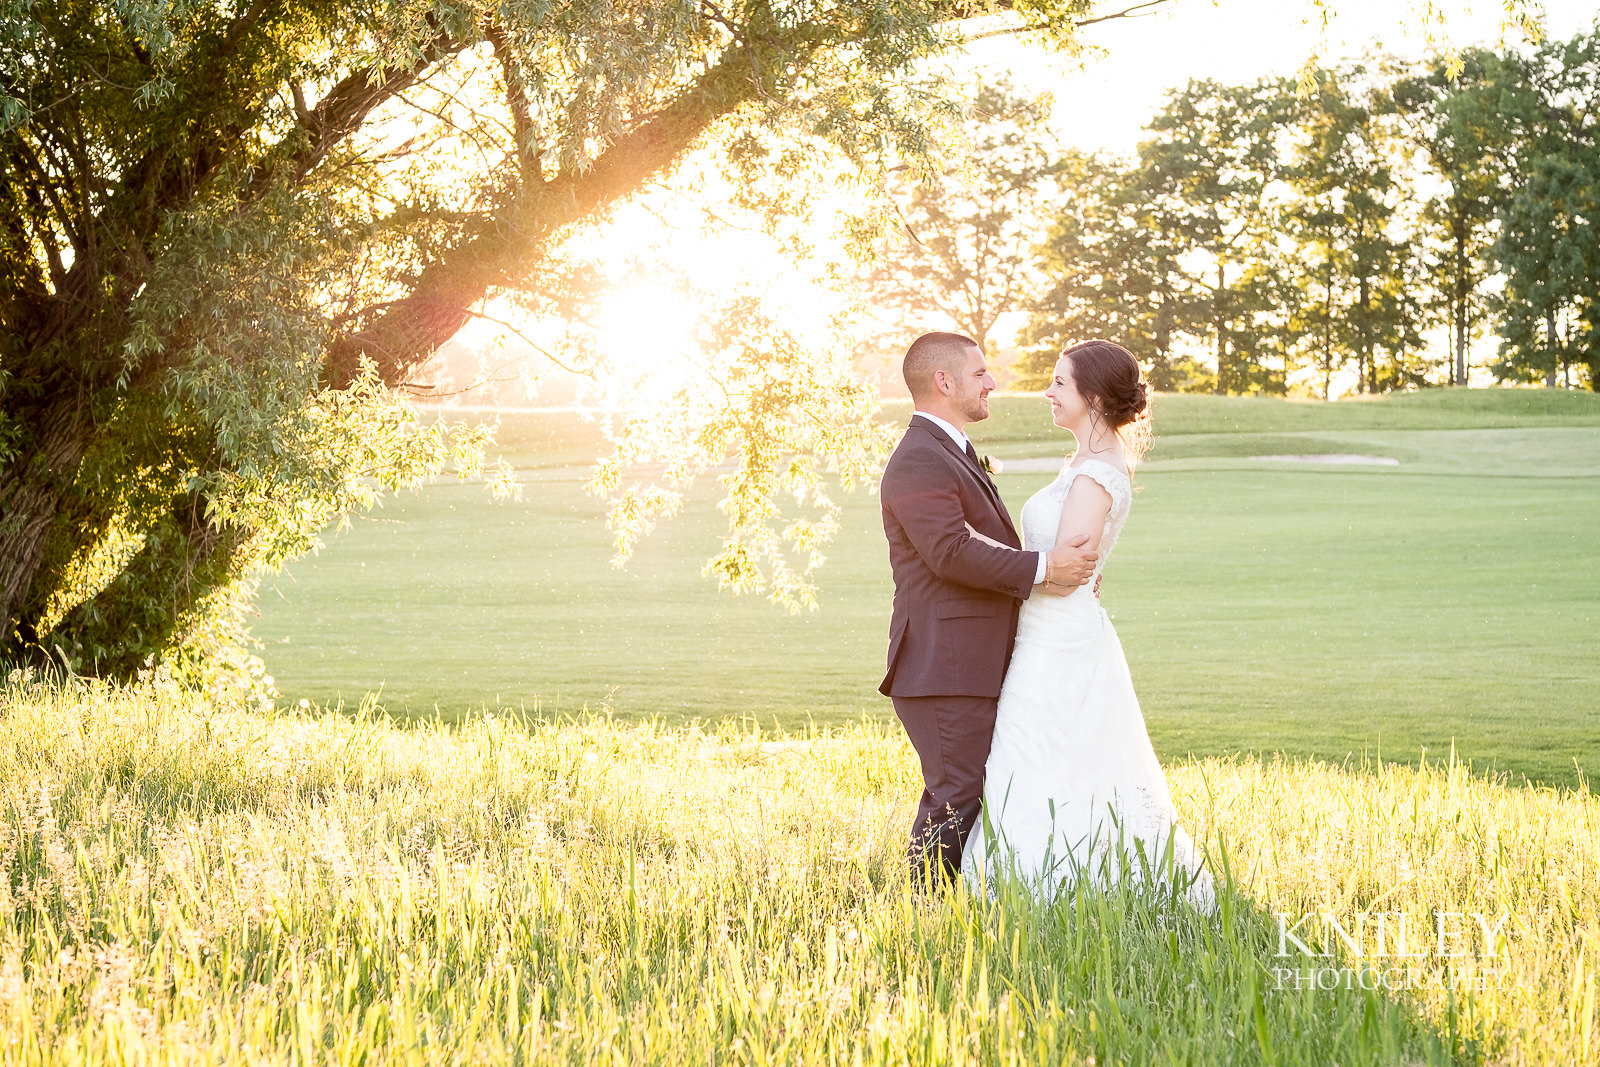 152 - Ravenwood Golf Club wedding pictures - Rochester NY - Kniley Photography - XT2B2236.jpg